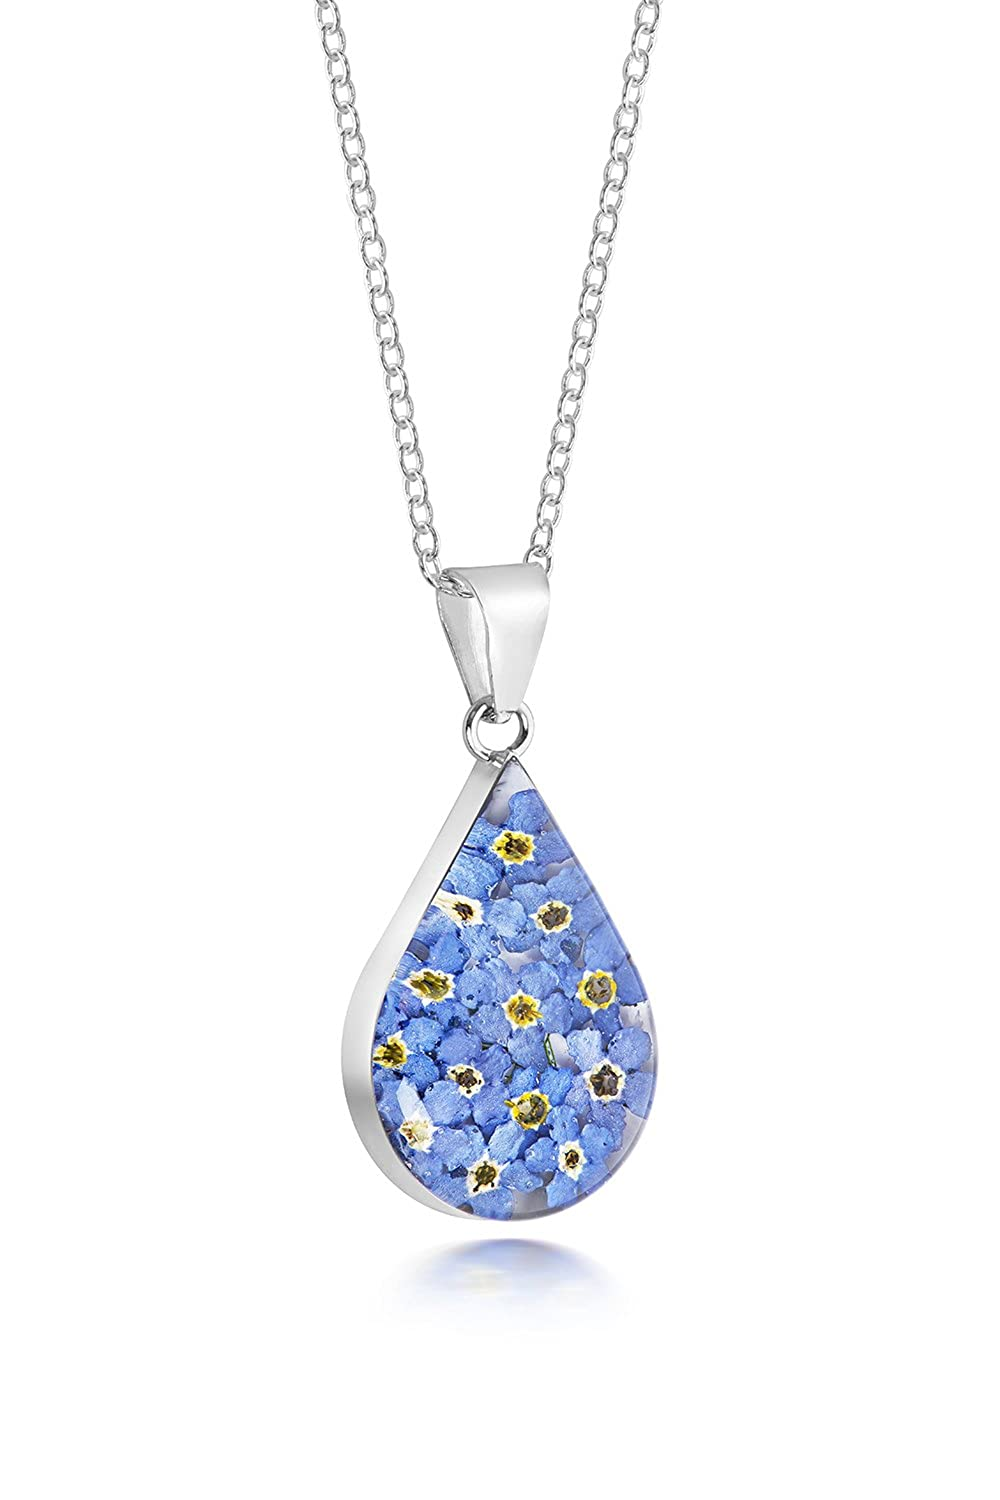 Silver rectangle pendant made with real forget-me-nots - includes an 18